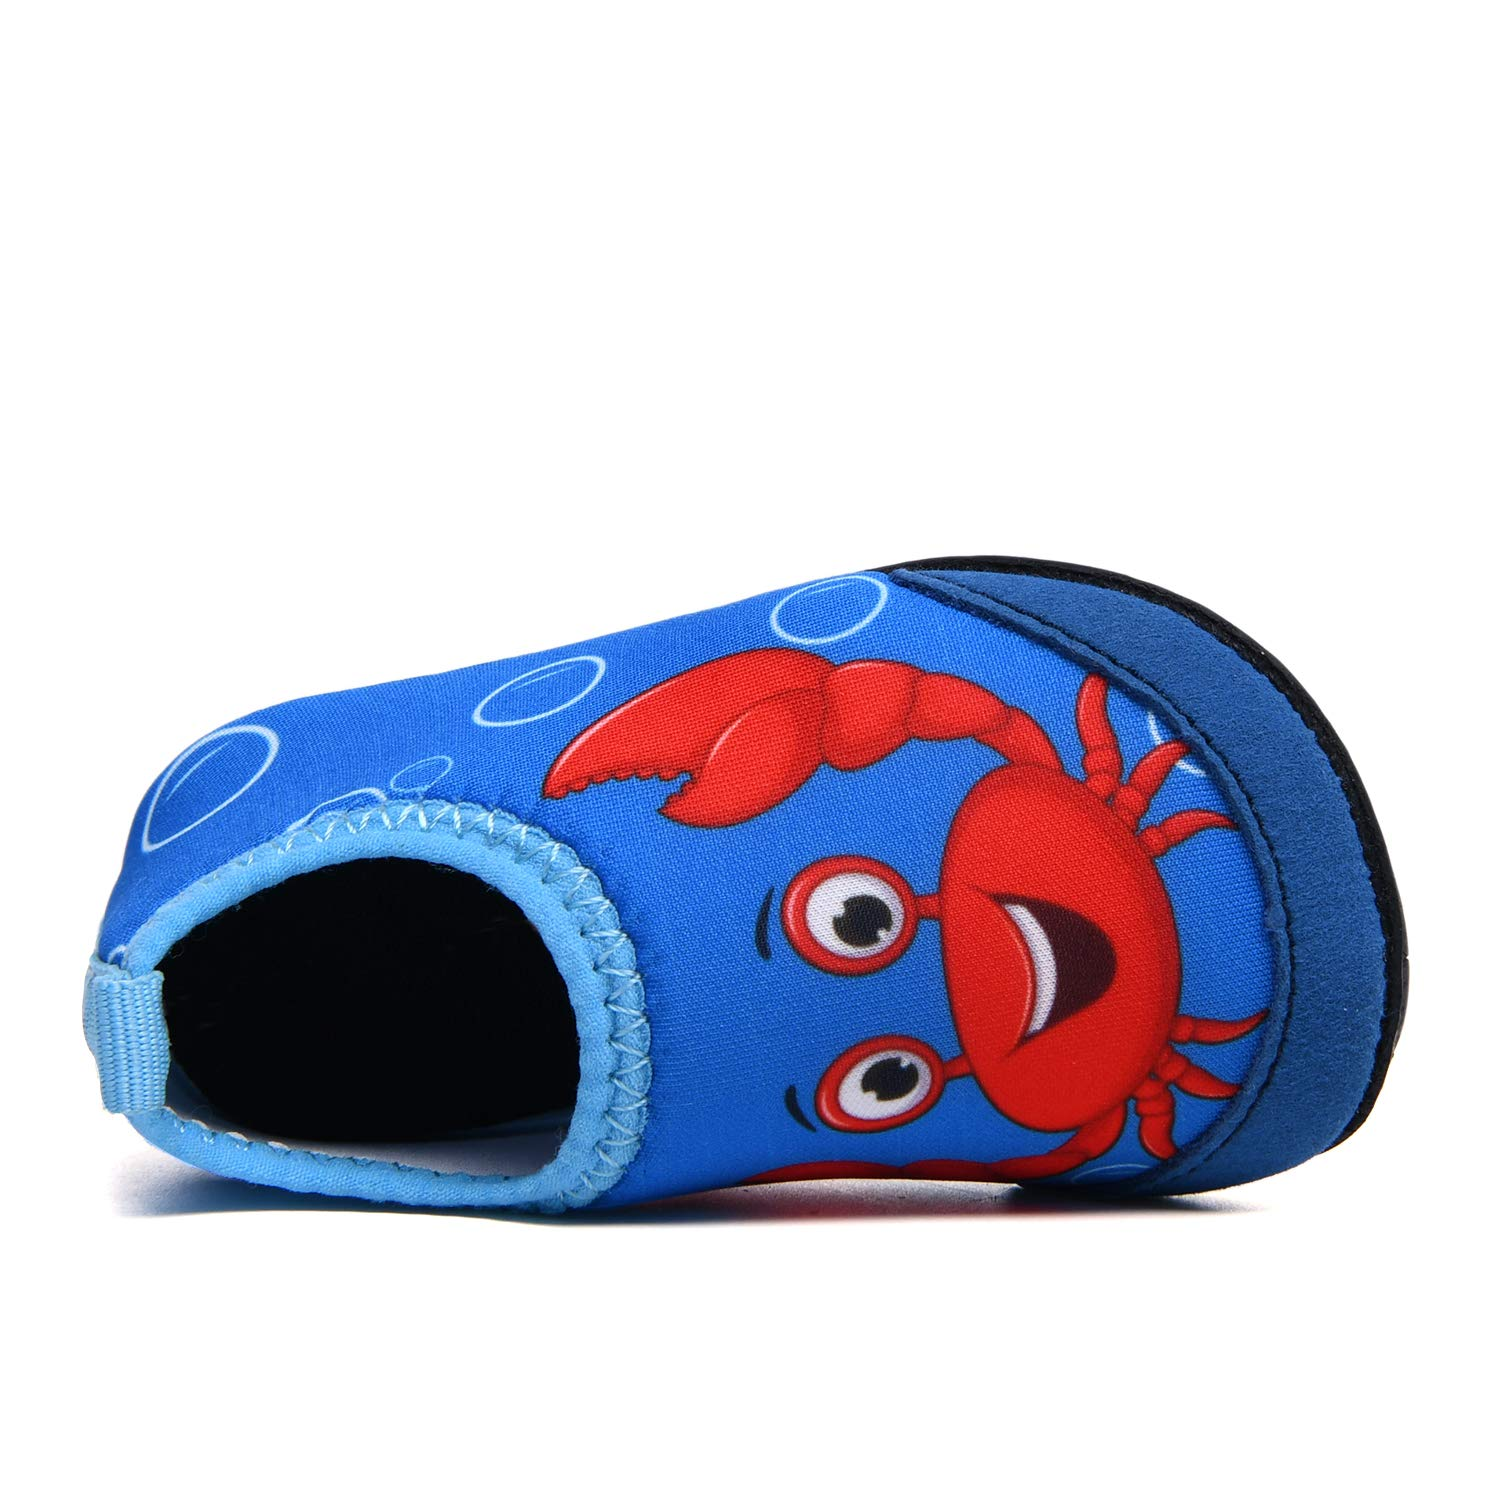 UNN Kids Toddler Water Shoes Barefoot Aqua Socks Quick Dry Non-Slip for Swim Pool Beach Outdoor Sports Activities